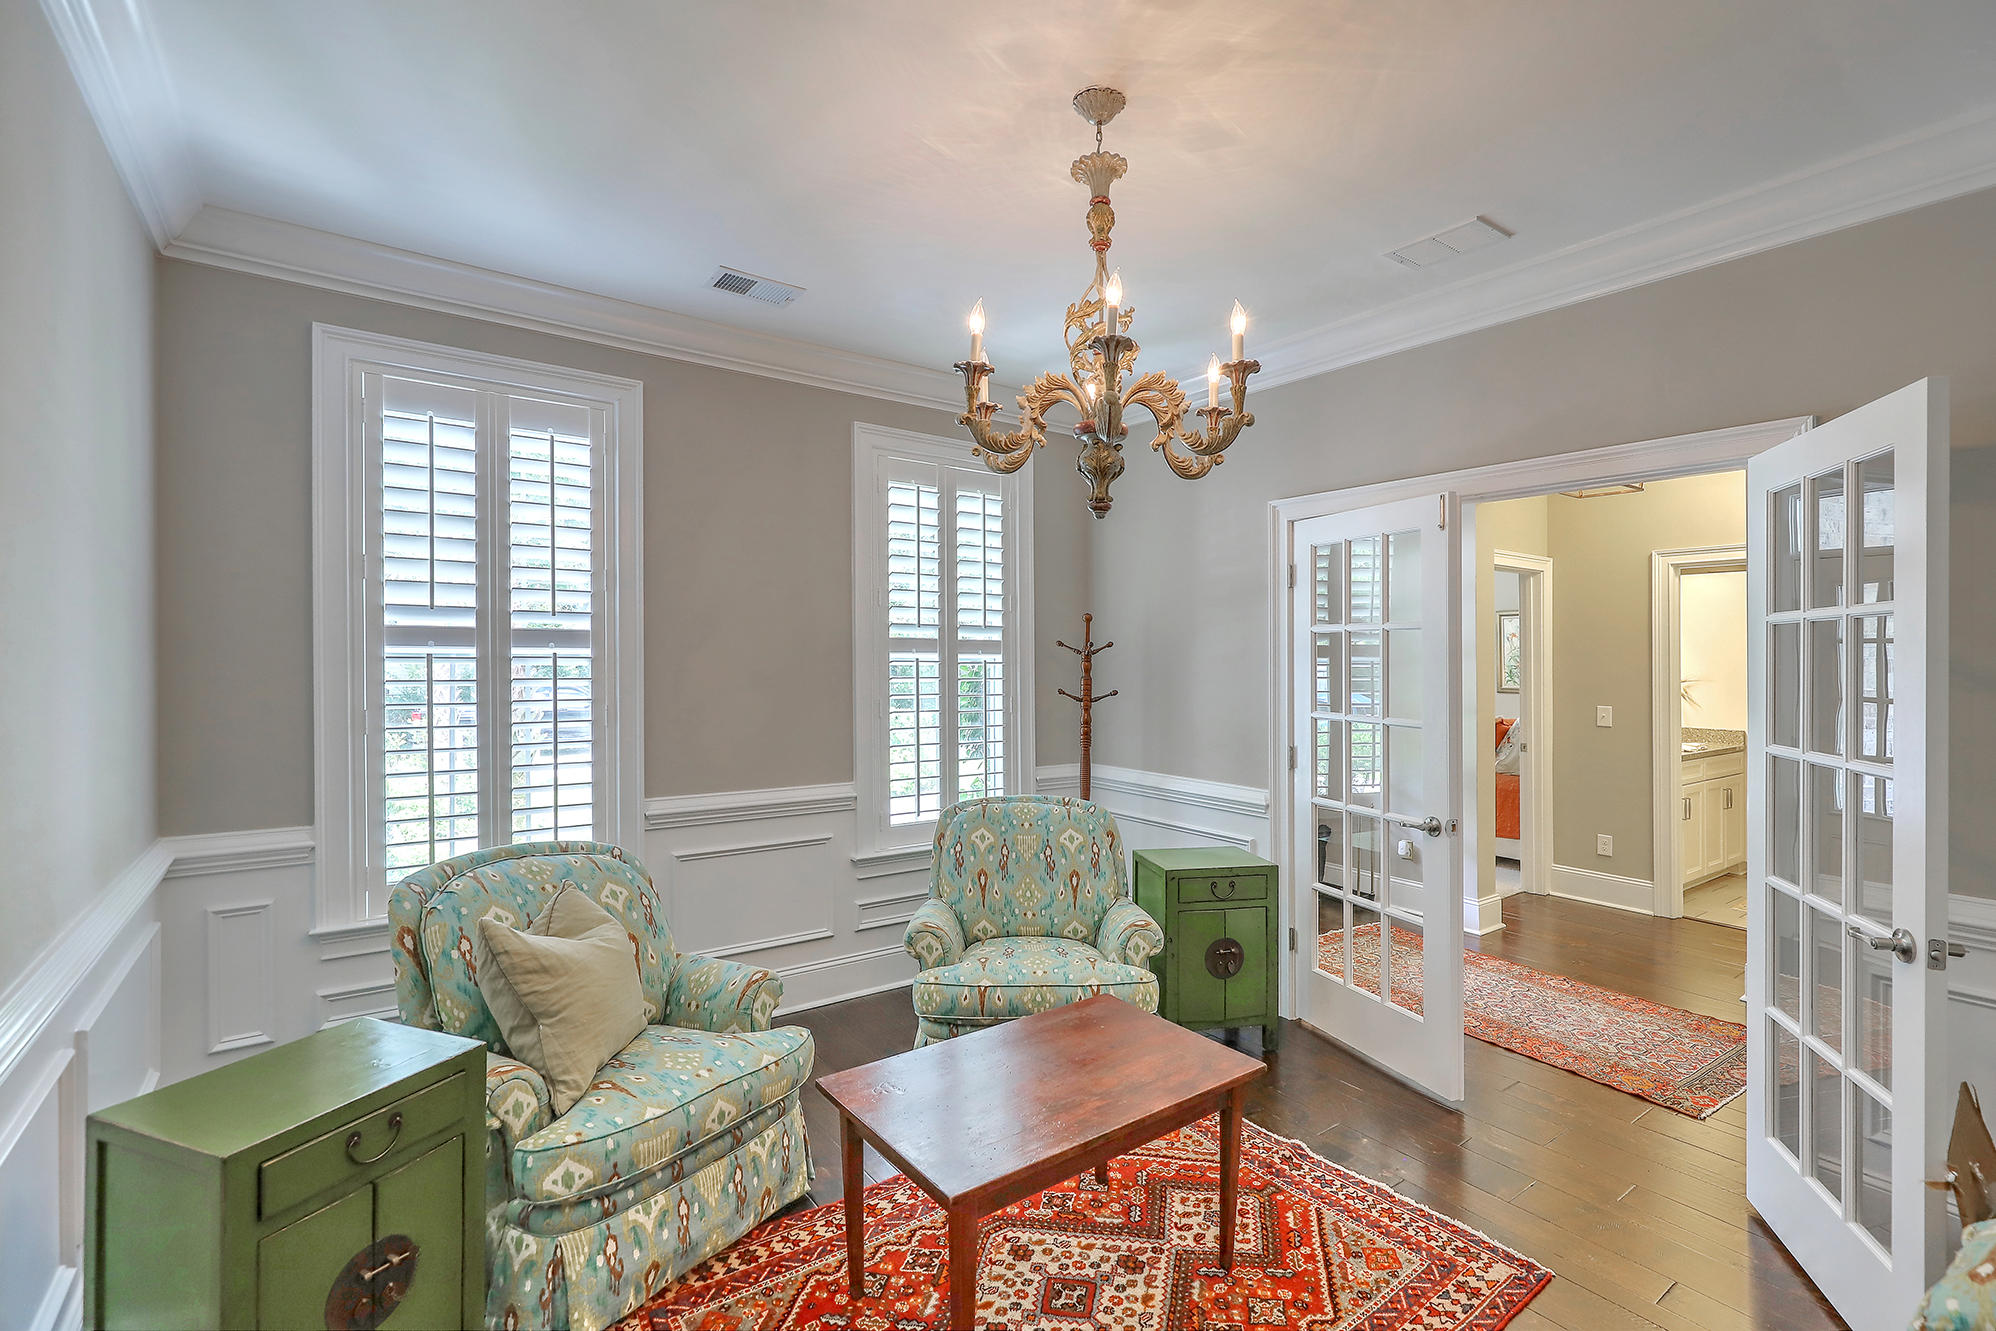 Riverland Terrace Homes For Sale - 2201 Ramsay, Charleston, SC - 8